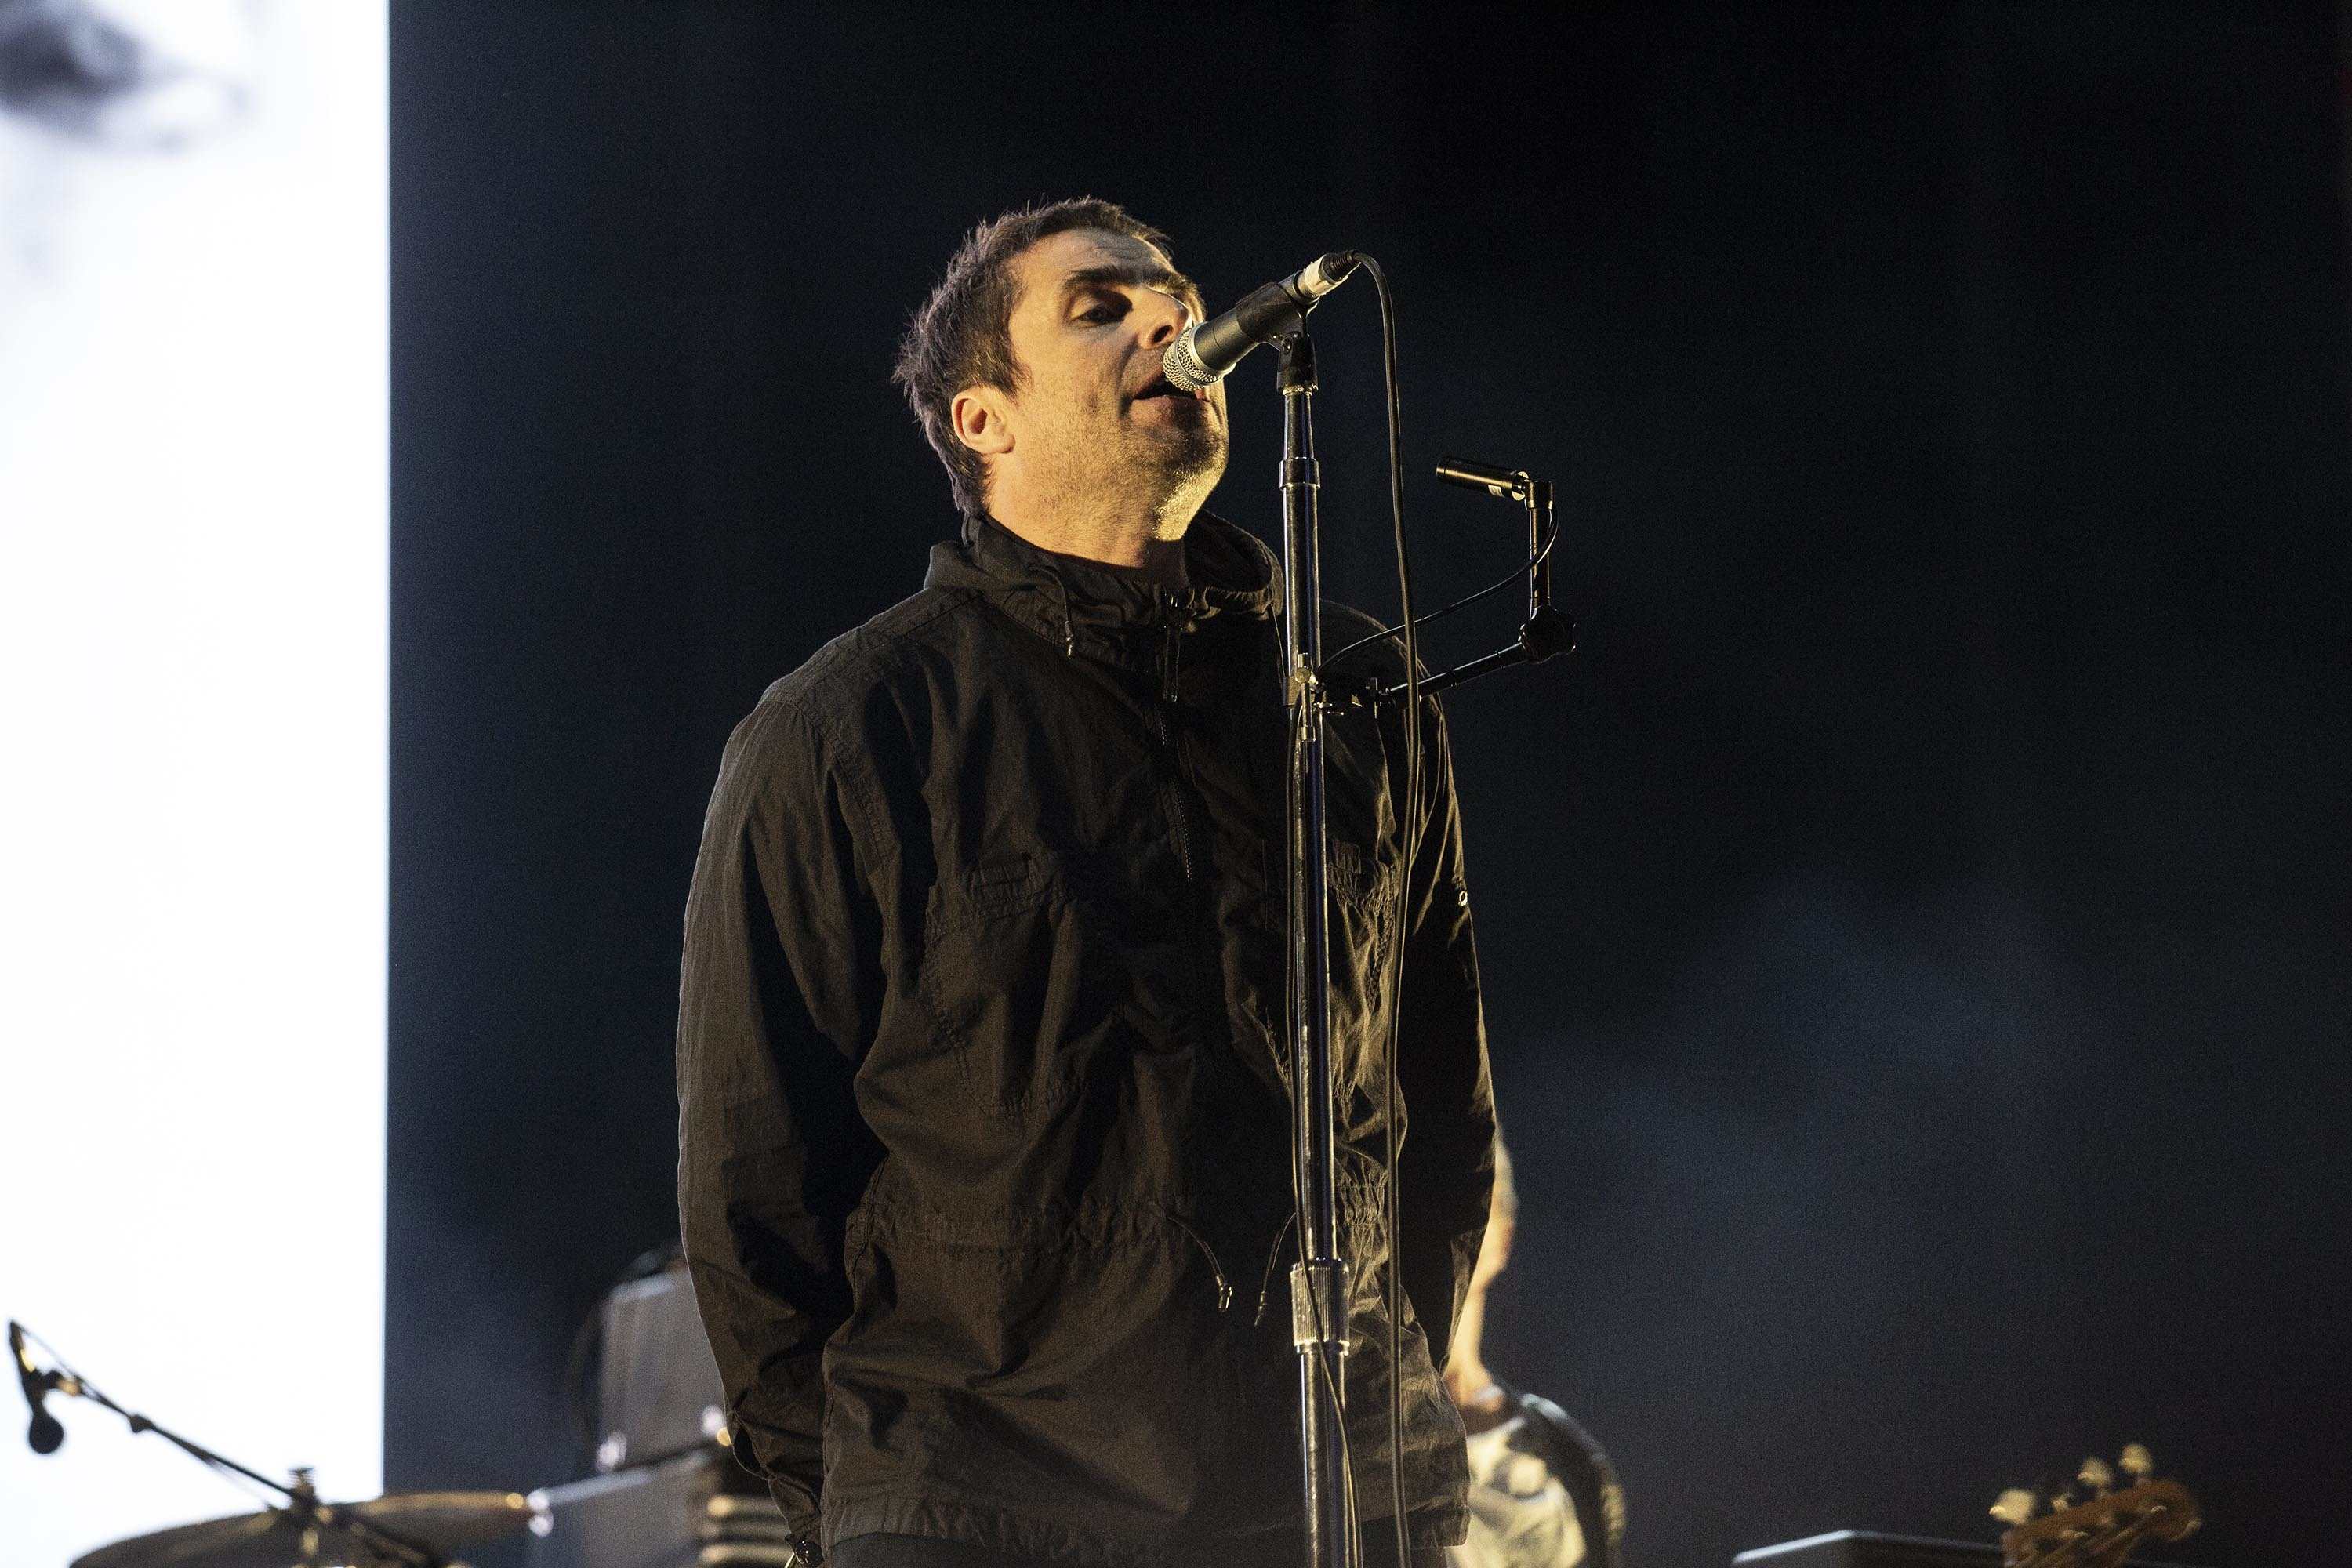 Liam Gallagher to play this year's Eden Sessions